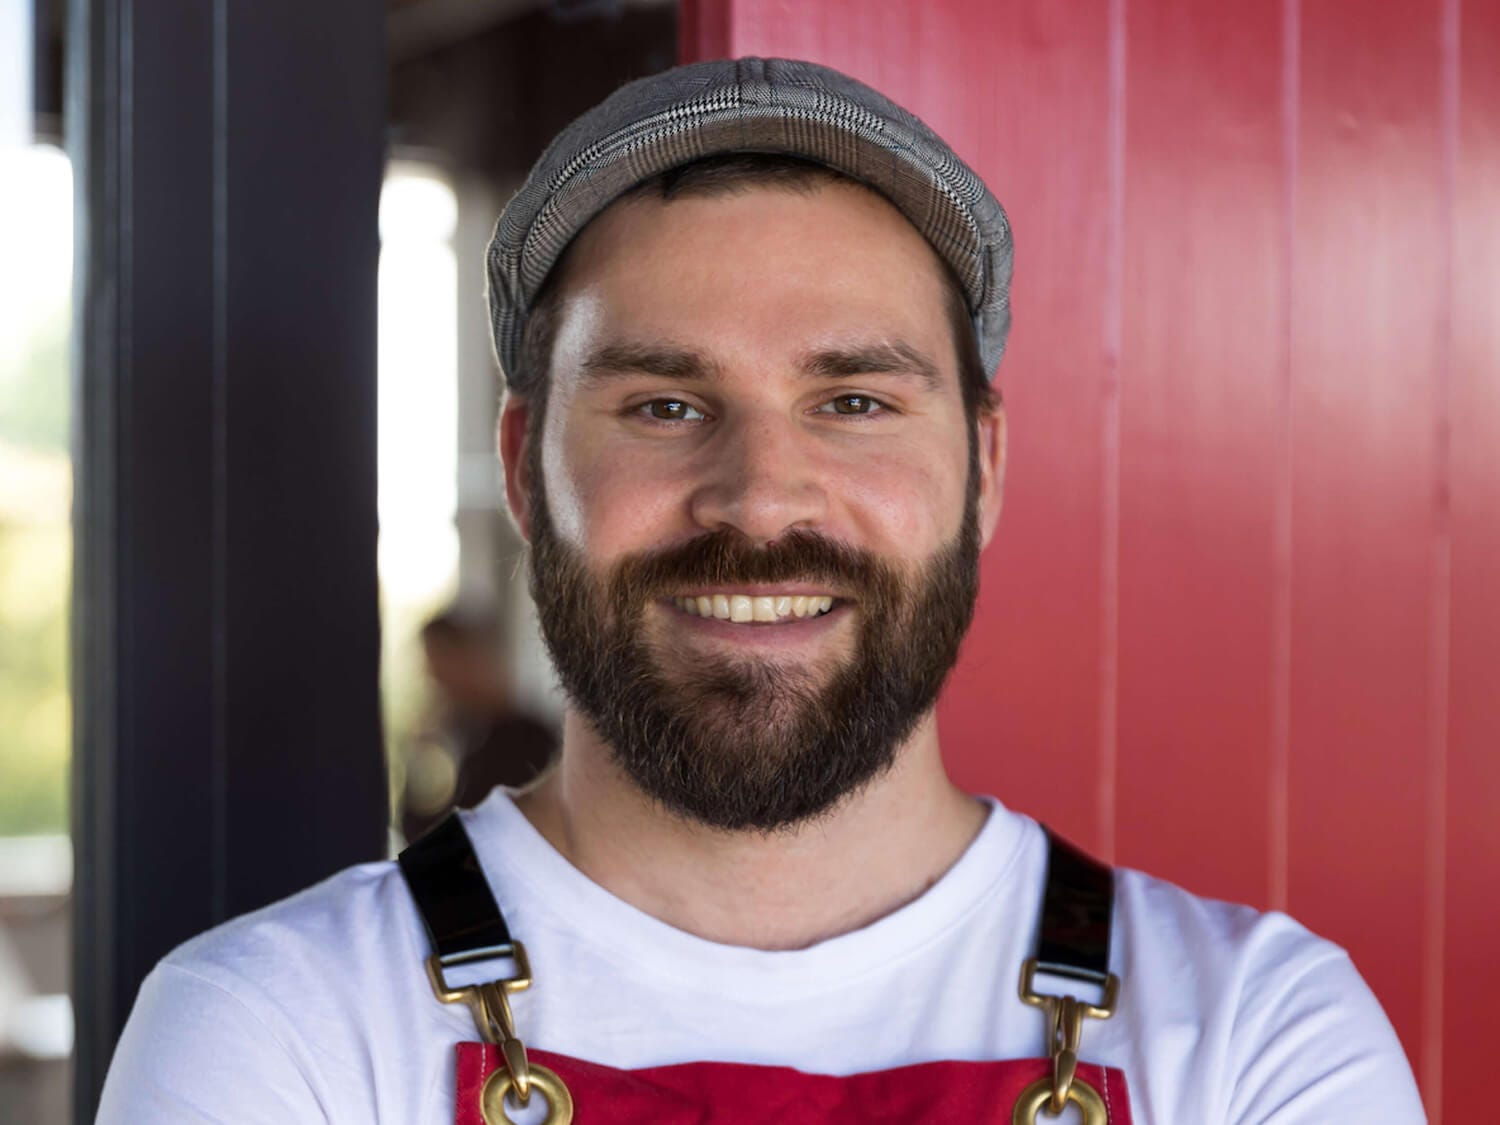 INTRODUCING GUEST CHEF JAMIE JOHNSTON